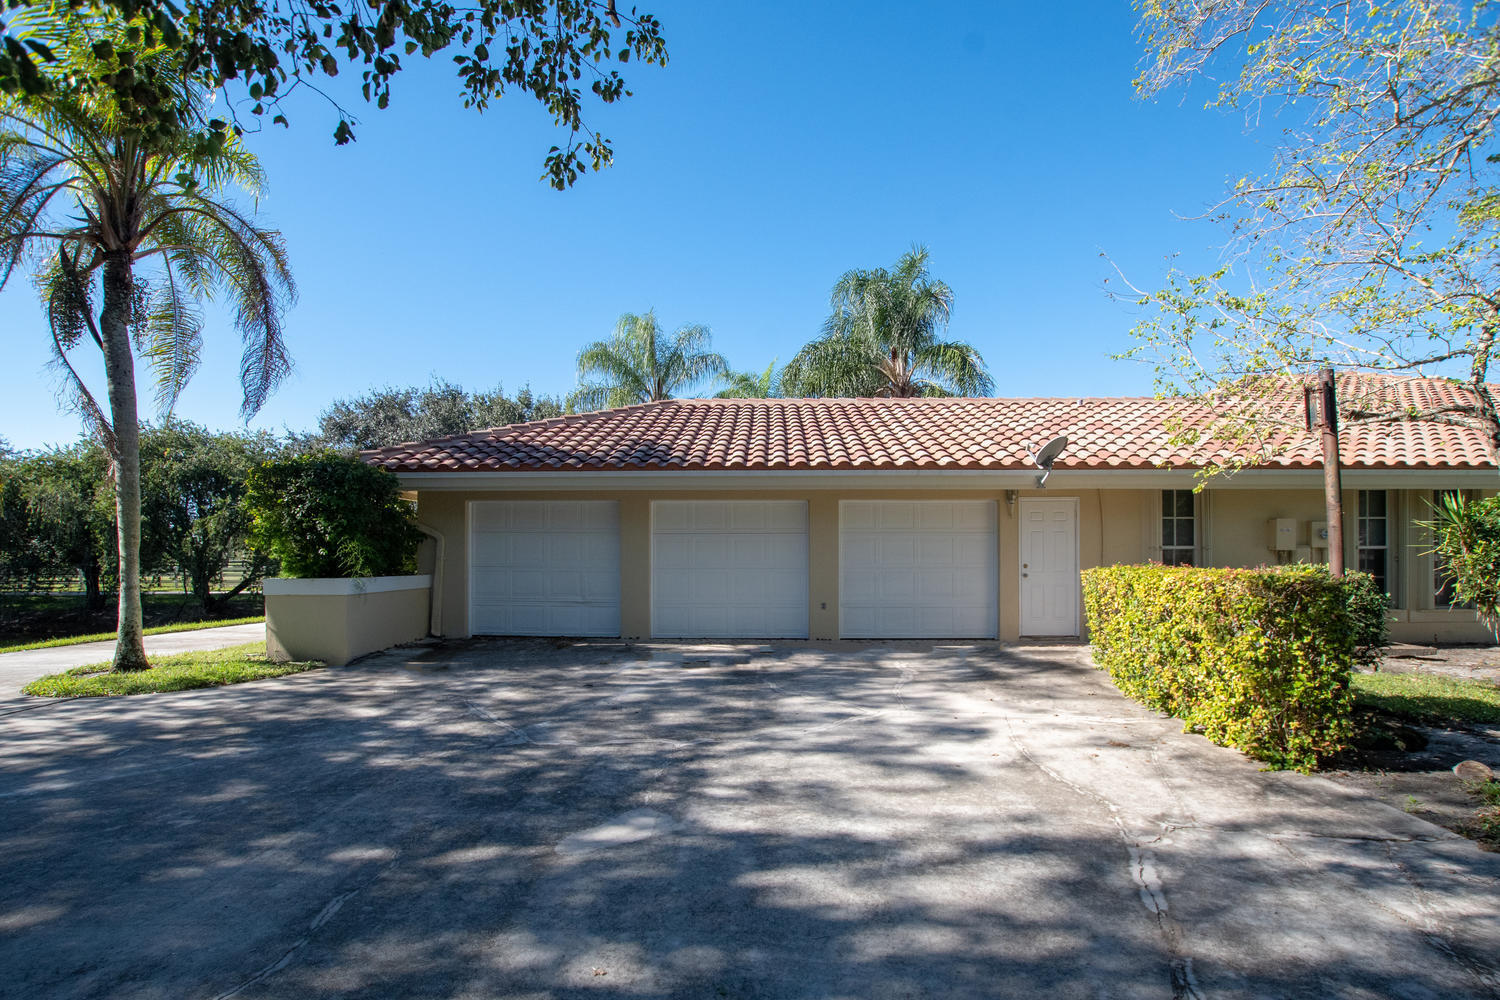 14794 Rolling Rock Place, Wellington, Florida 33414, 5 Bedrooms Bedrooms, ,4 BathroomsBathrooms,Single Family,For Sale,Saddle Trail Park,Rolling Rock,1,RX-10583662